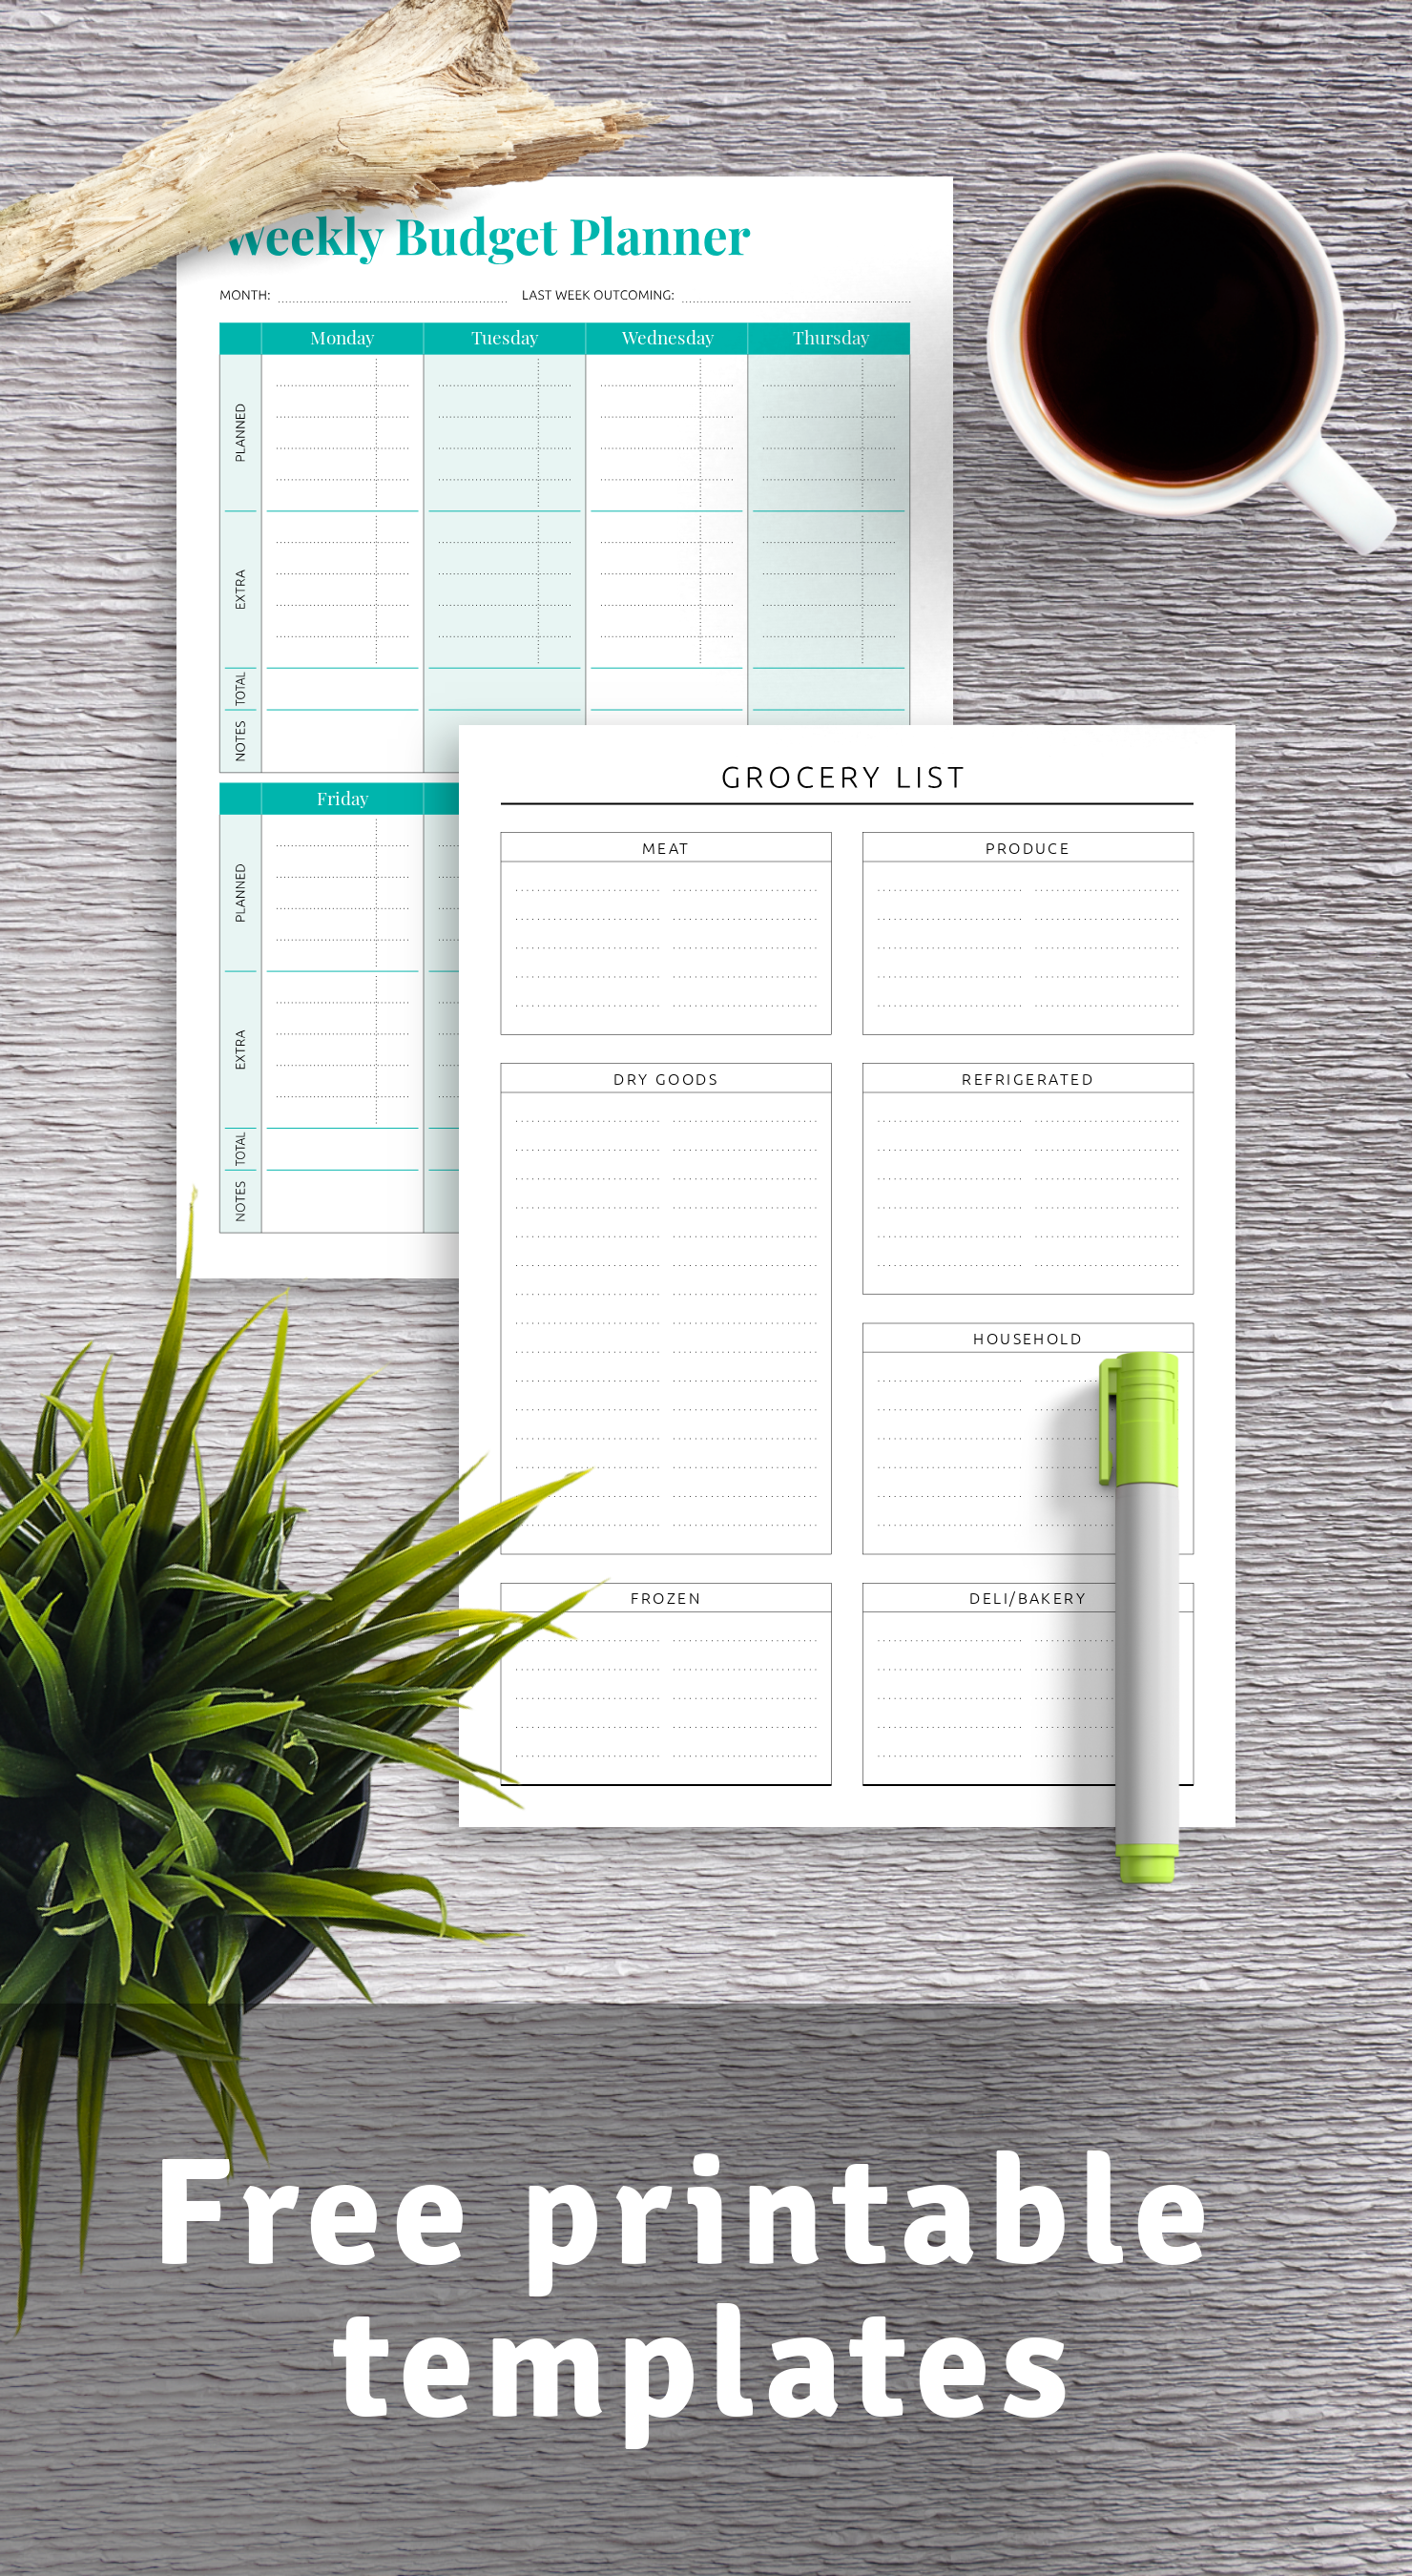 Download free printable templates